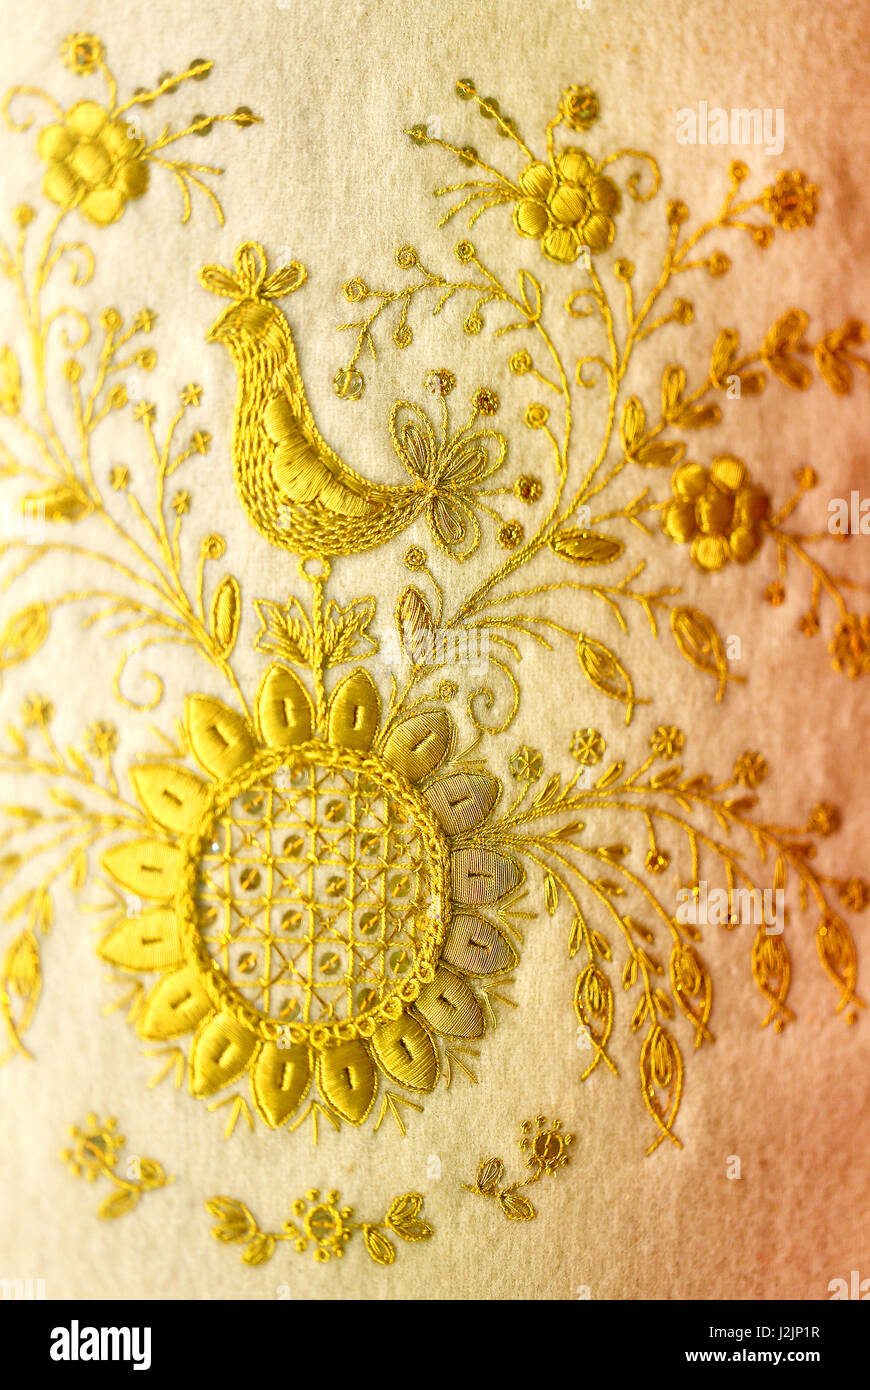 Gold embroidery stock photos